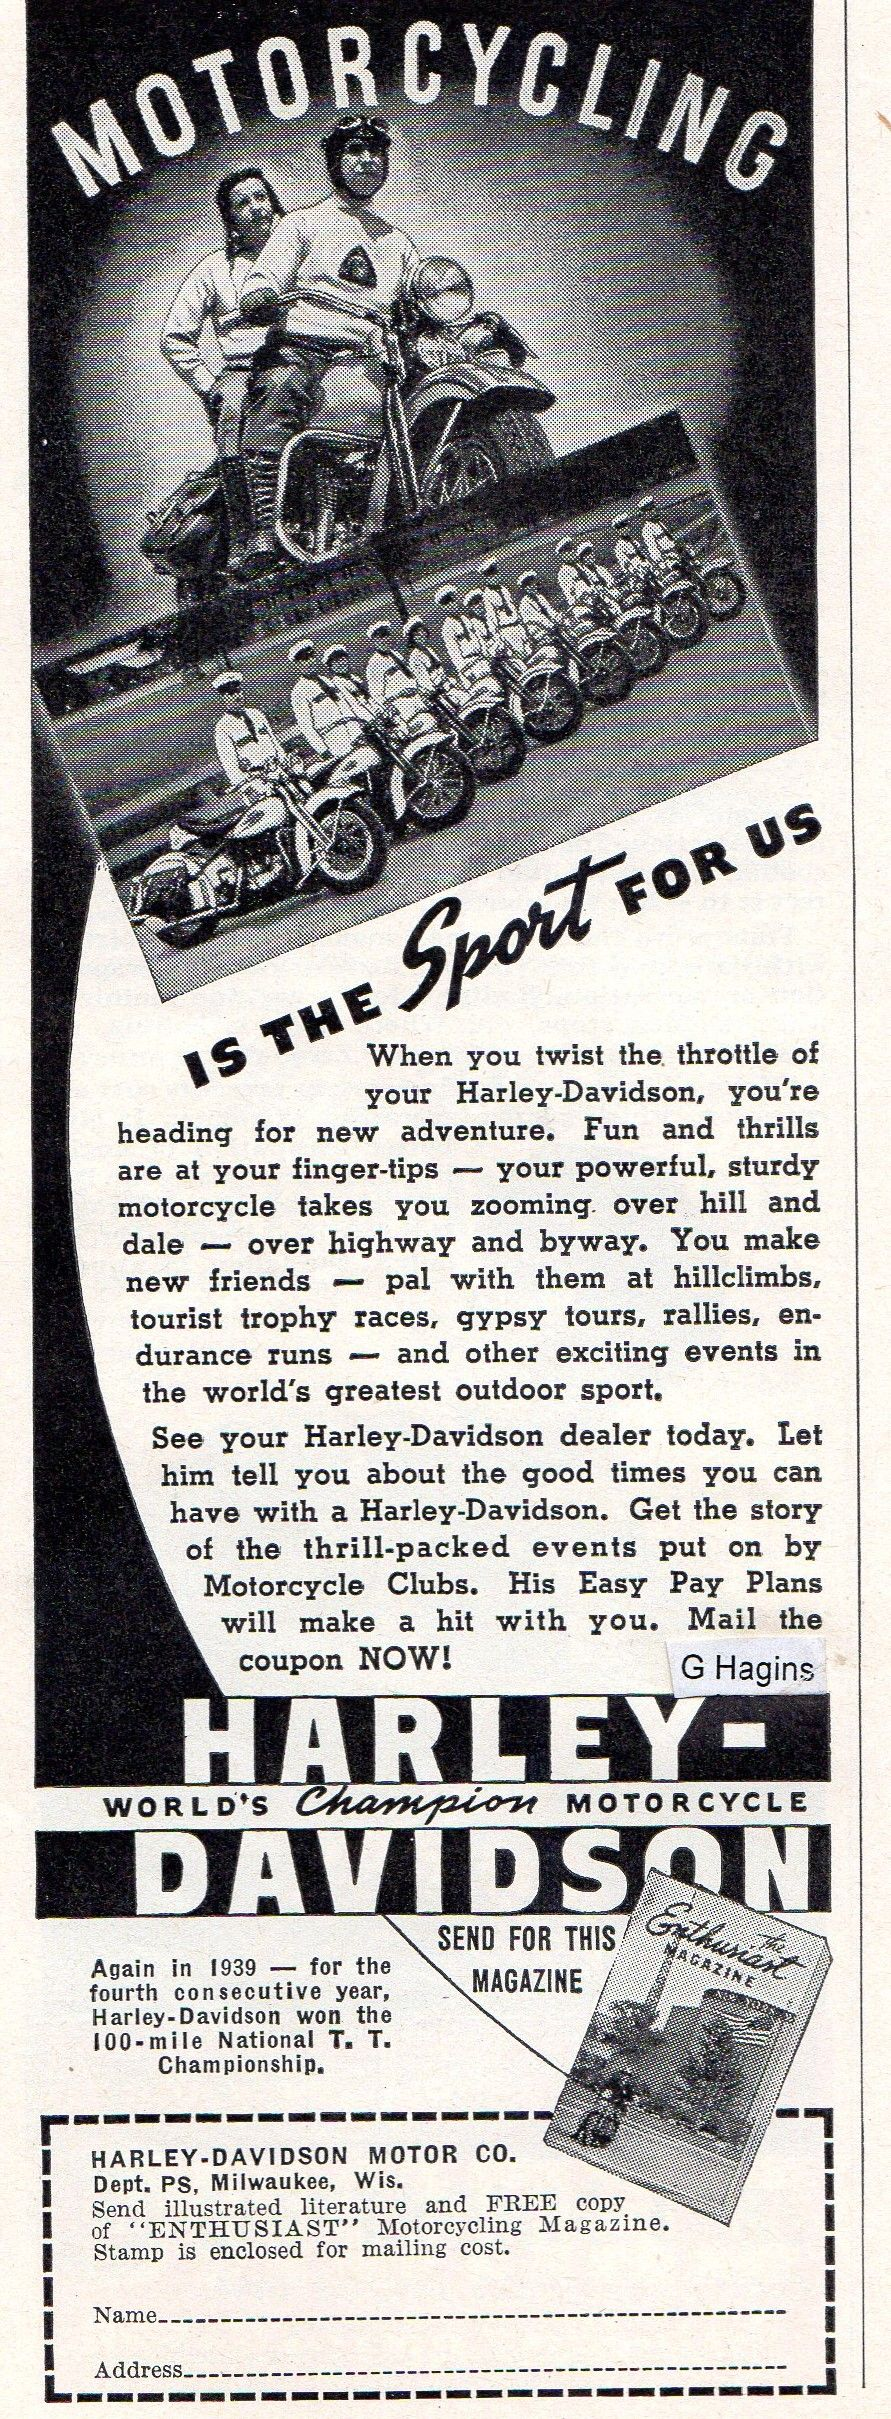 1939 ad. Hagins collection.